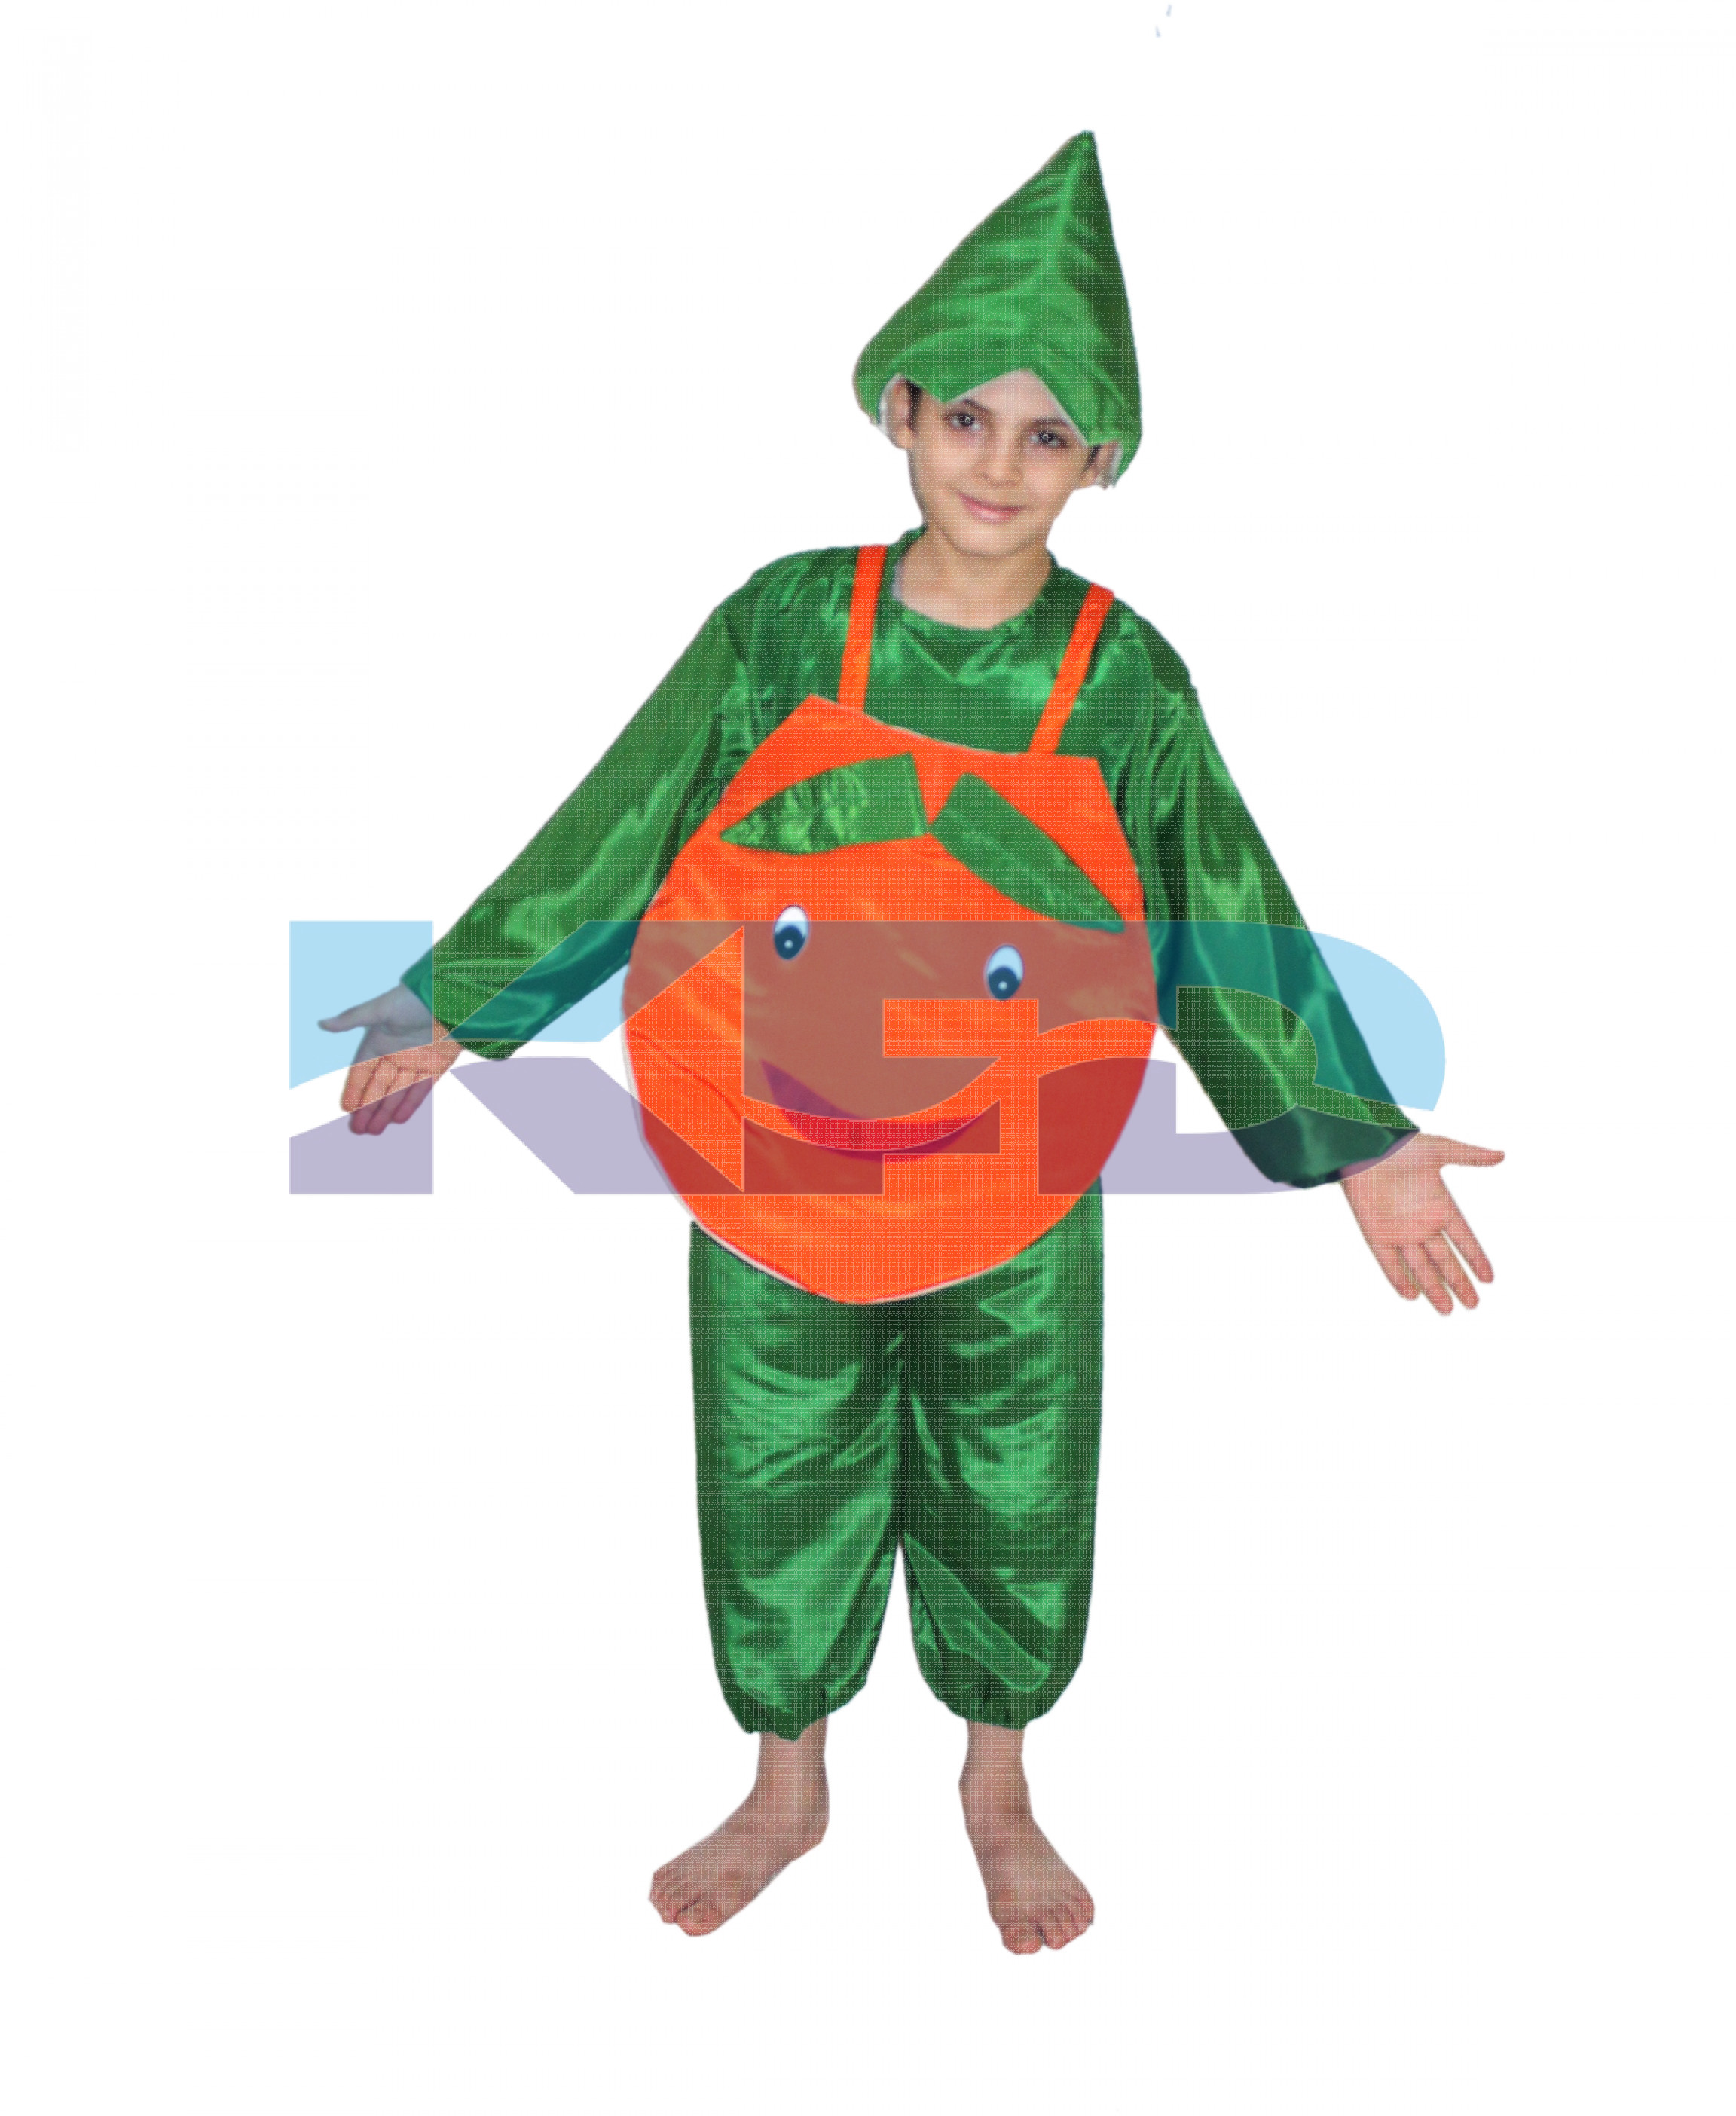 Orange fancy dress for kids,Fruits Costume for School Annual function/Theme Party/Competition/Stage Shows Dress